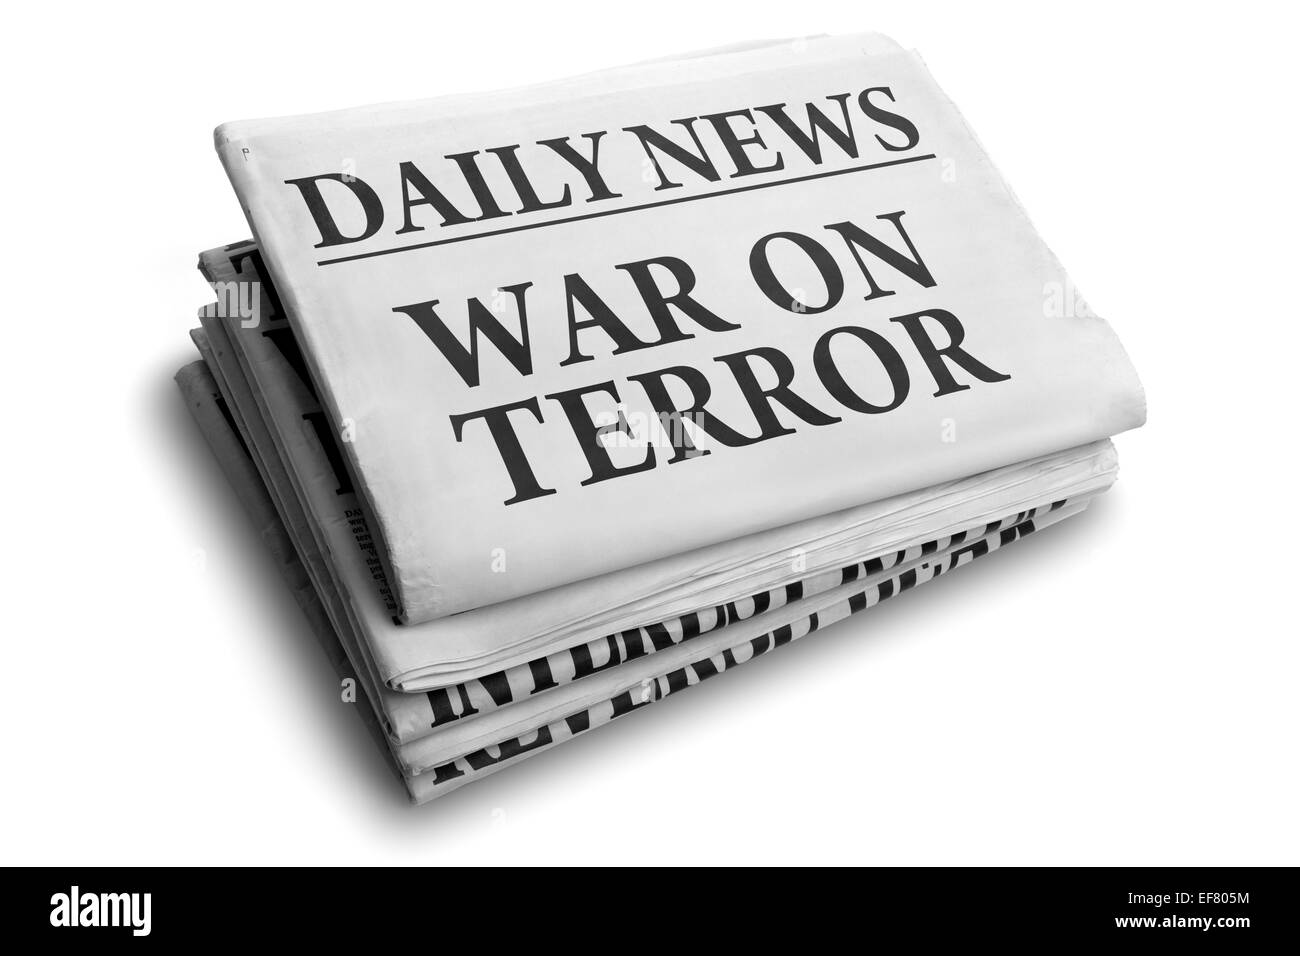 War on terror daily newspaper headline - Stock Image